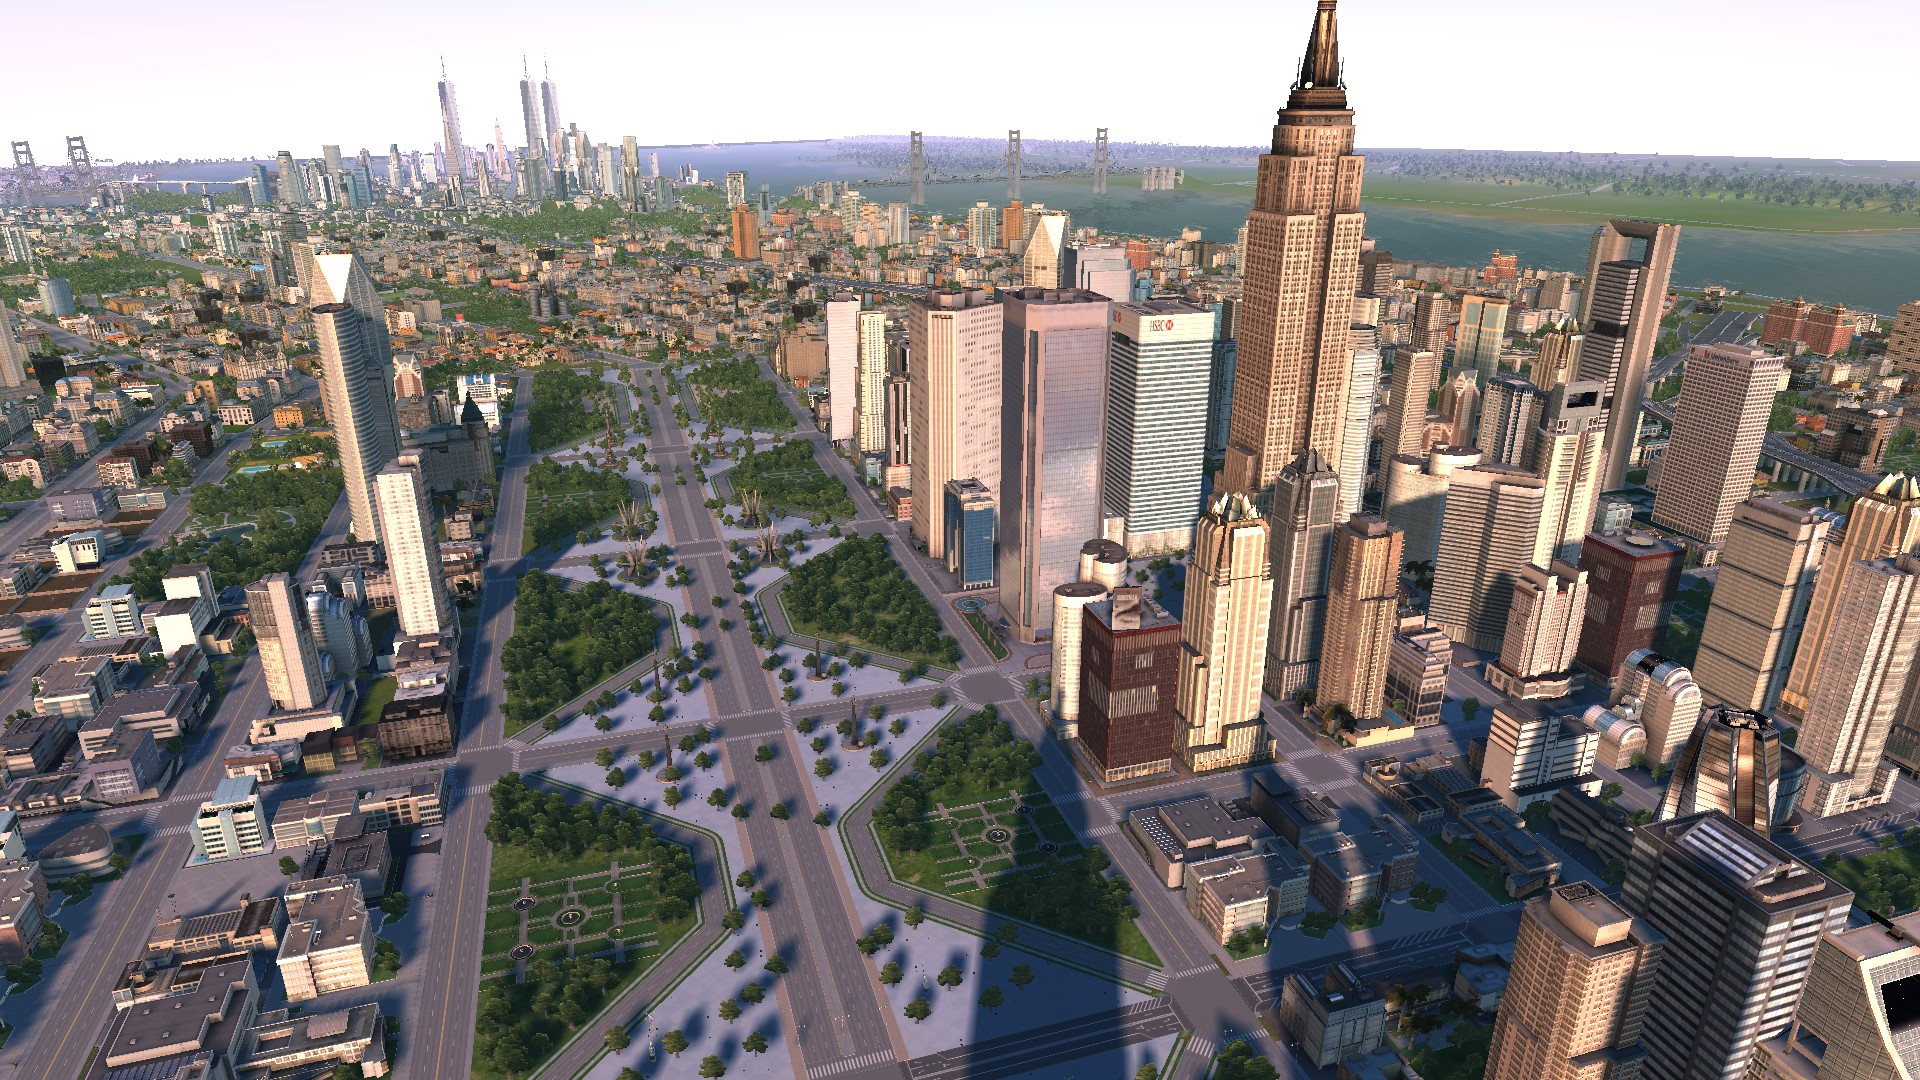 cxl_screenshot_liberty city_45.jpg